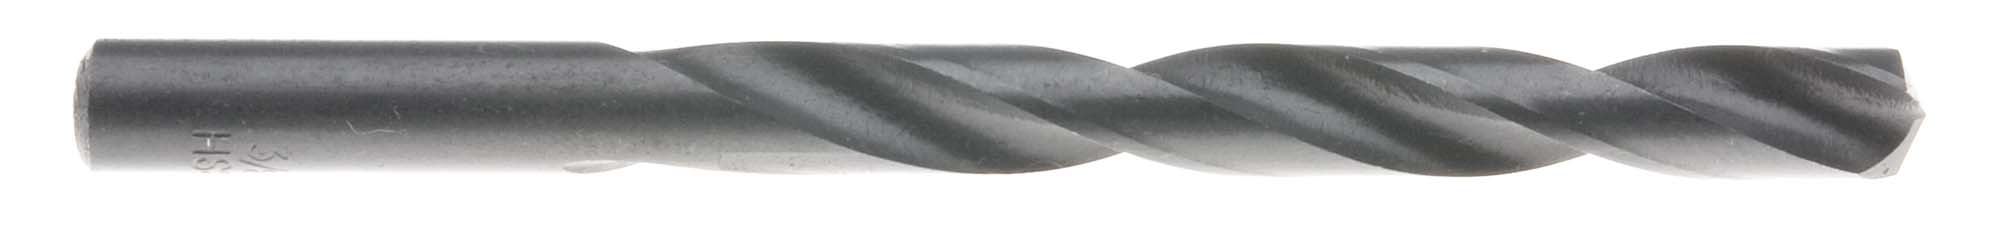 "W (.386"") Heavy Duty Split Point Jobber Drill Bit, High Speed Steel"